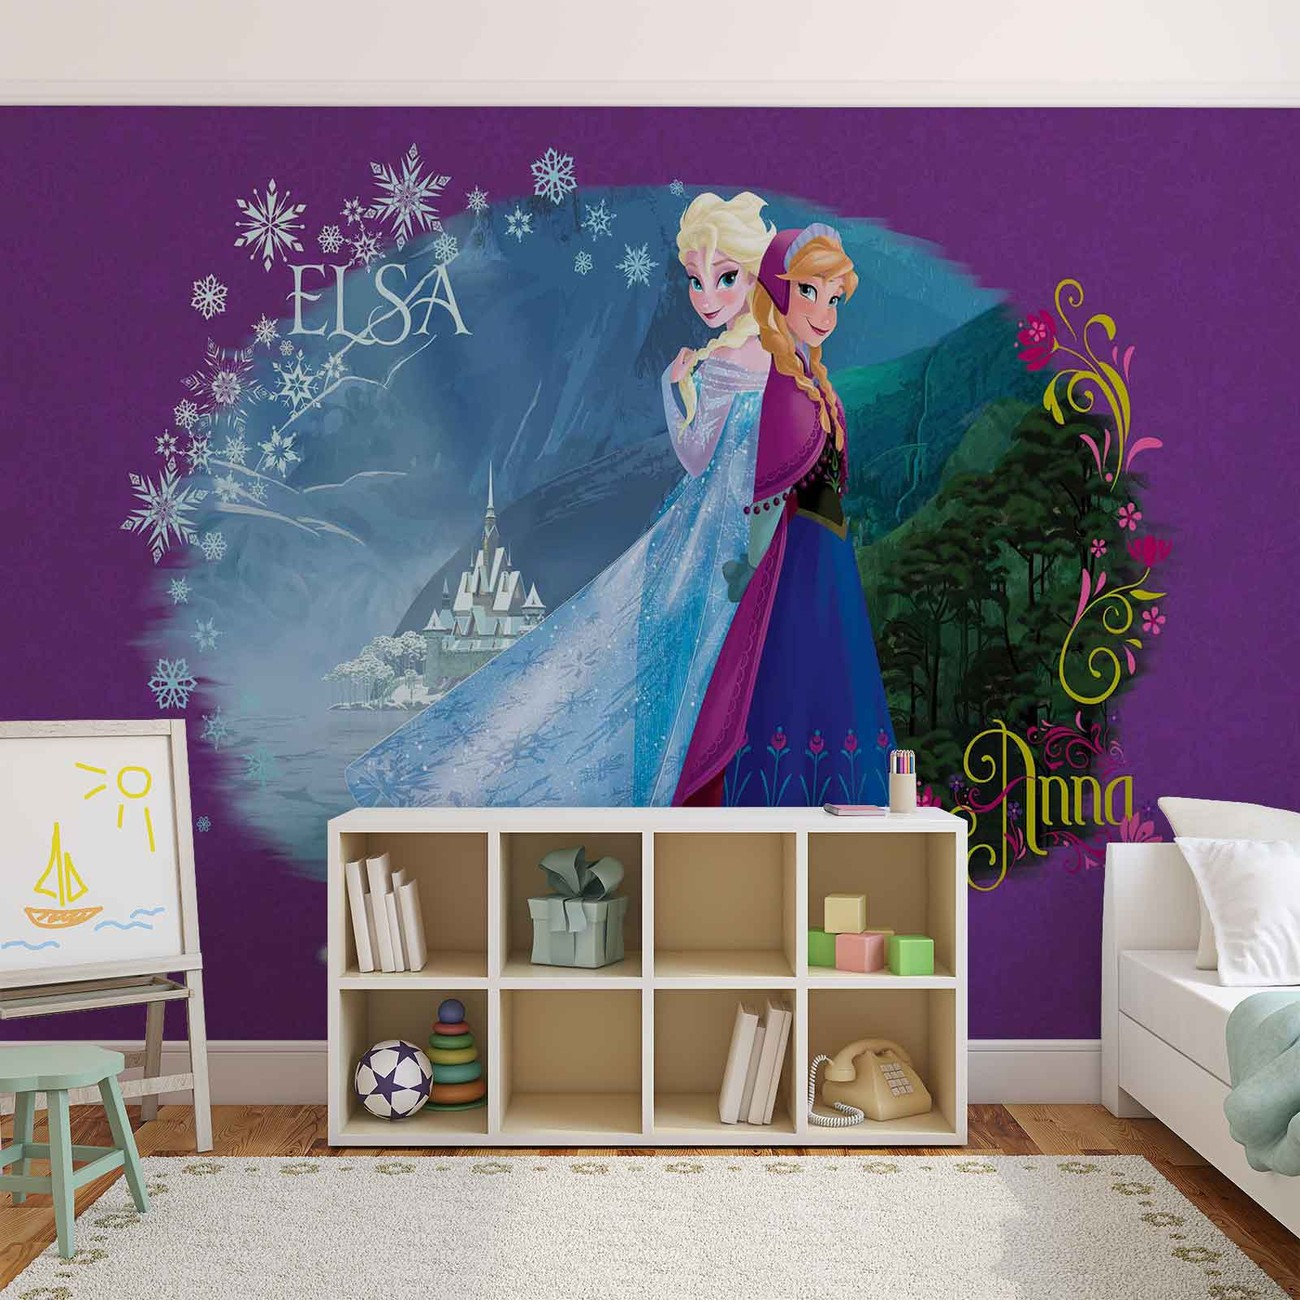 disney frozen wall paper mural buy at europosters price from